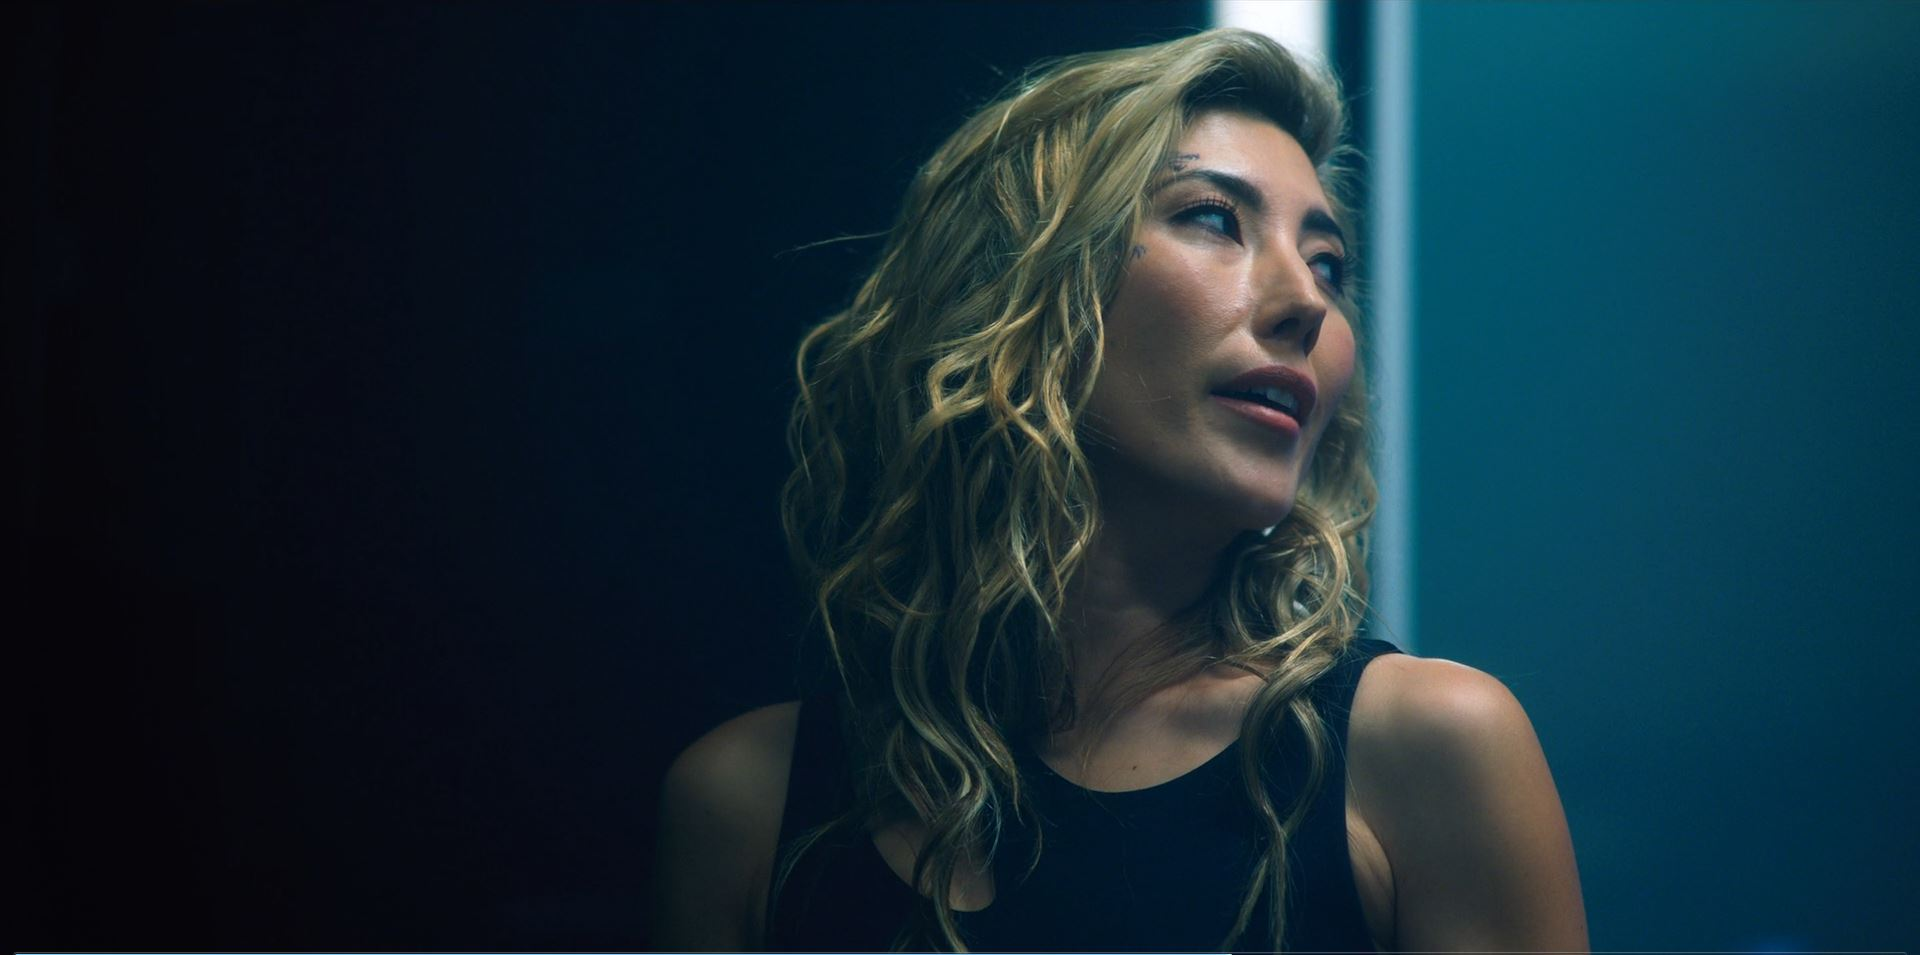 Altered Carbon Season 2 Review - Dichen Lachman returns as Reileen